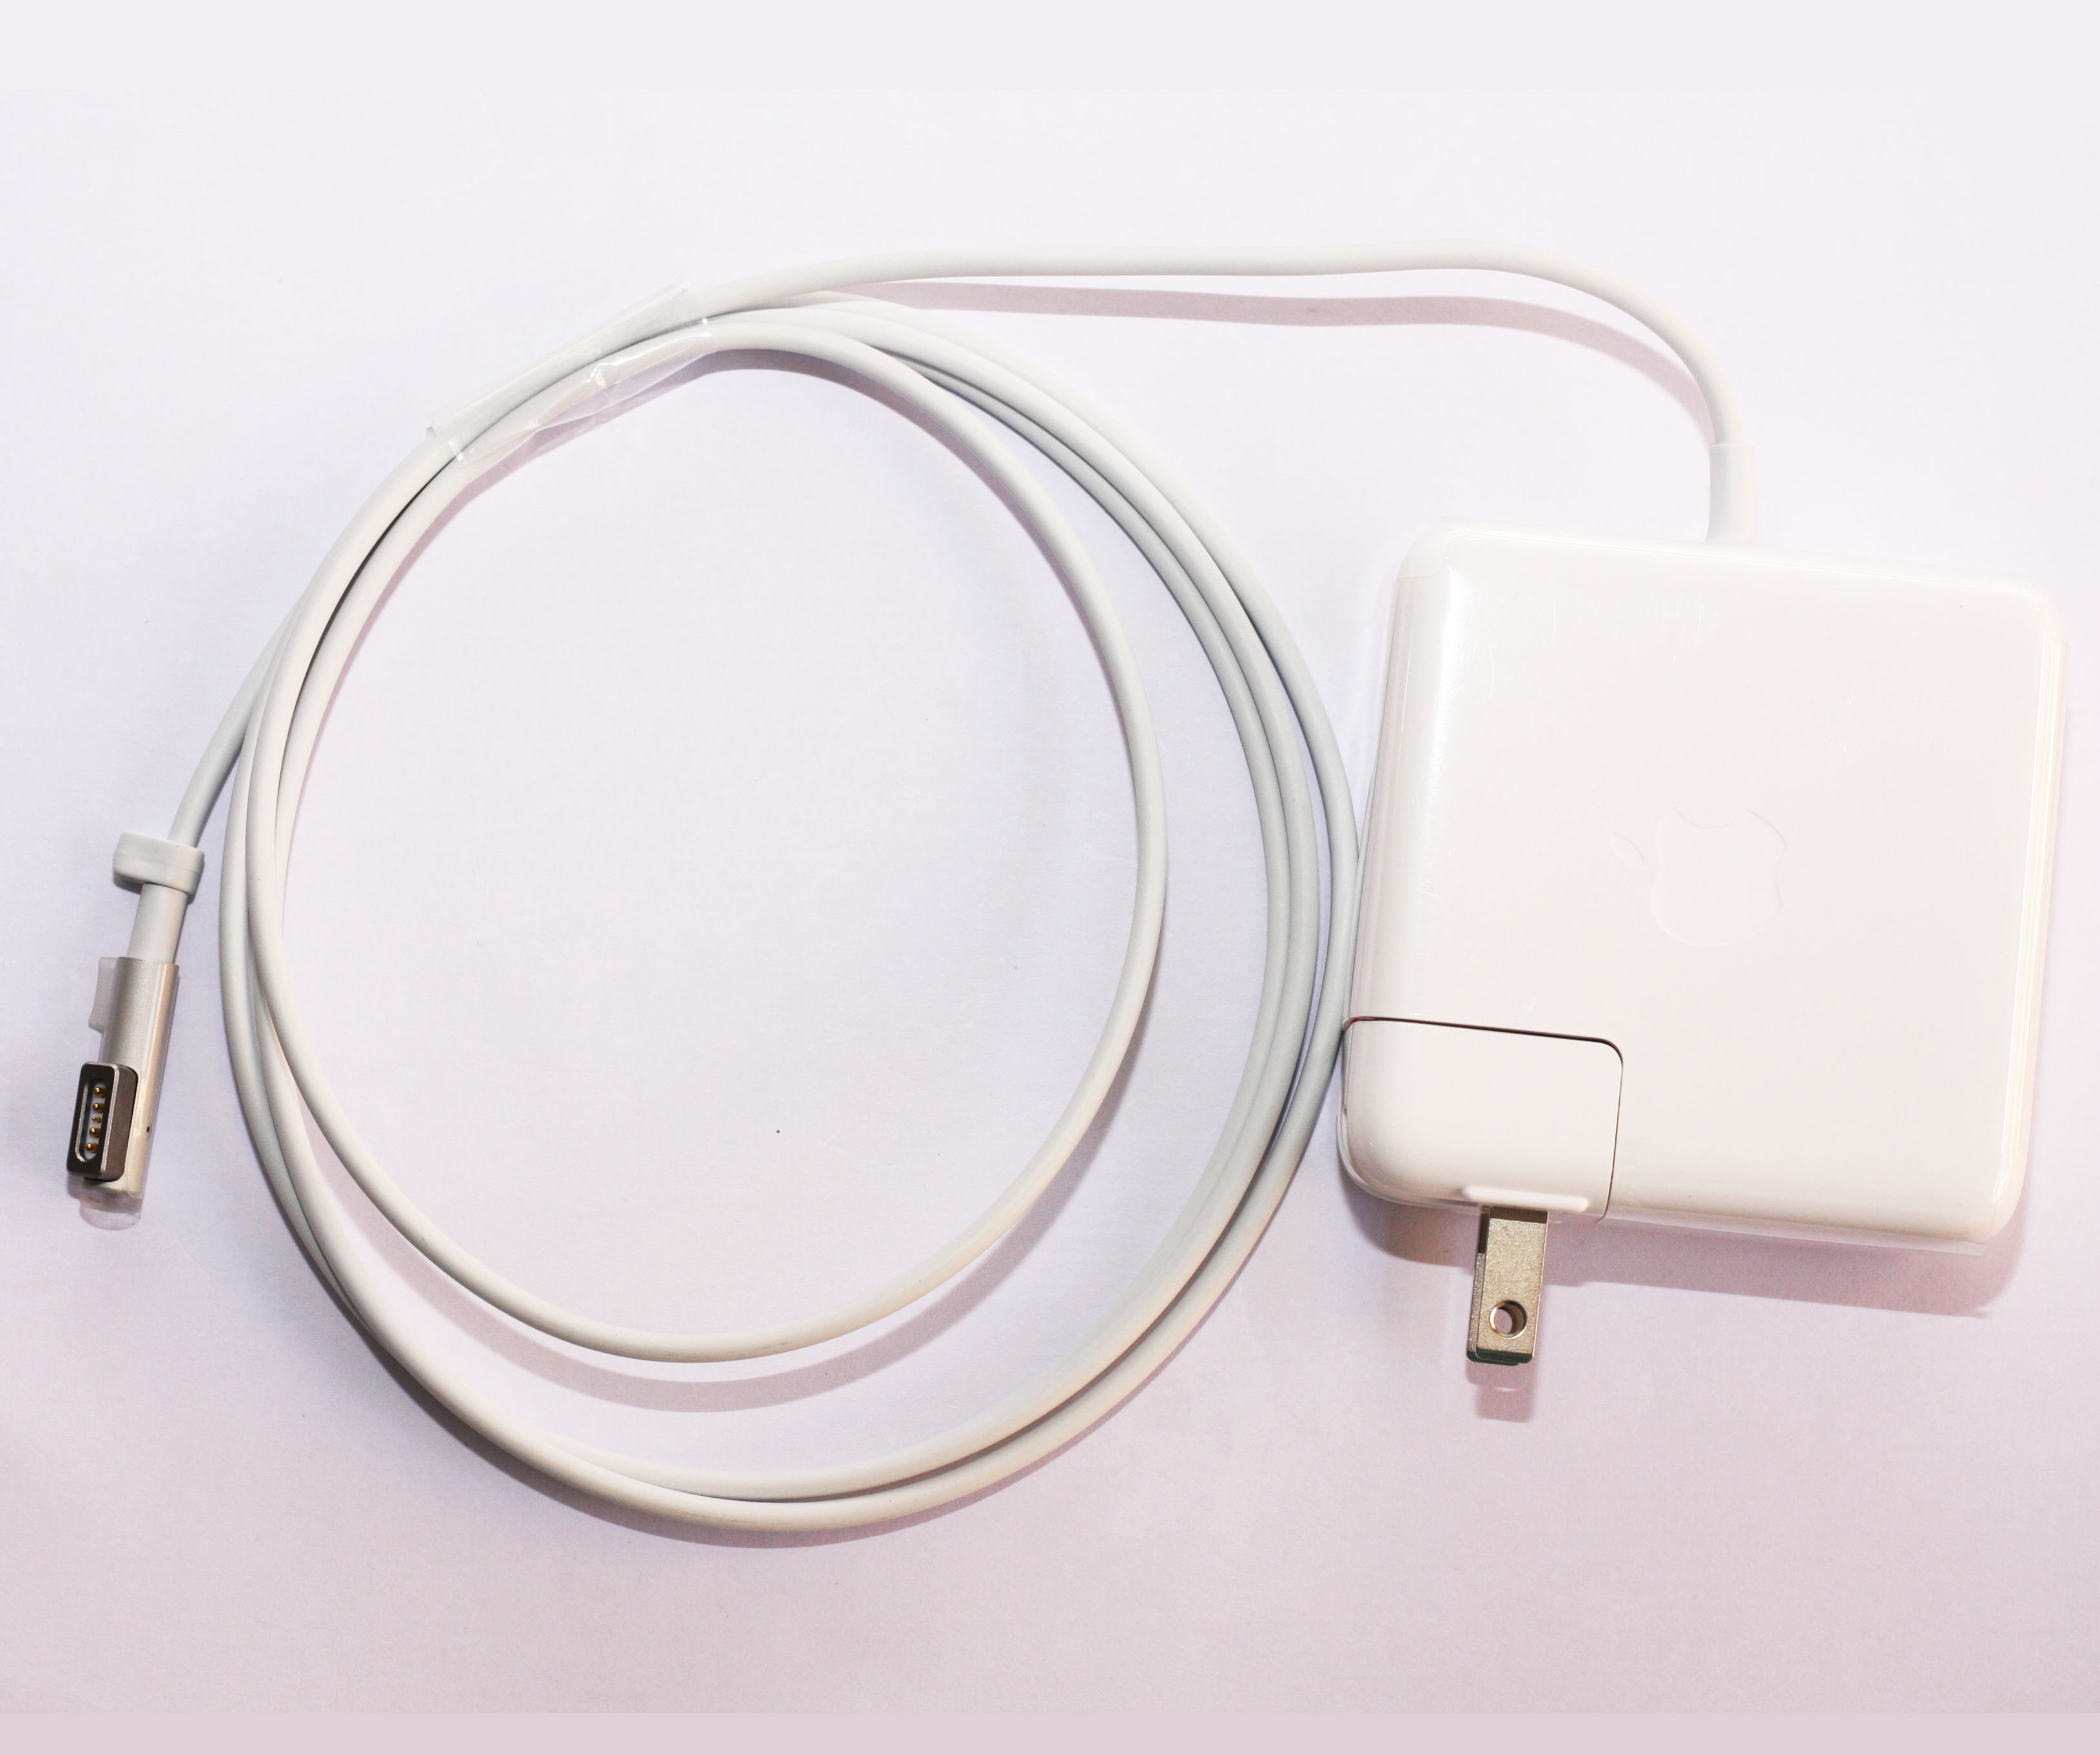 Sạc Macbook 60W 2010